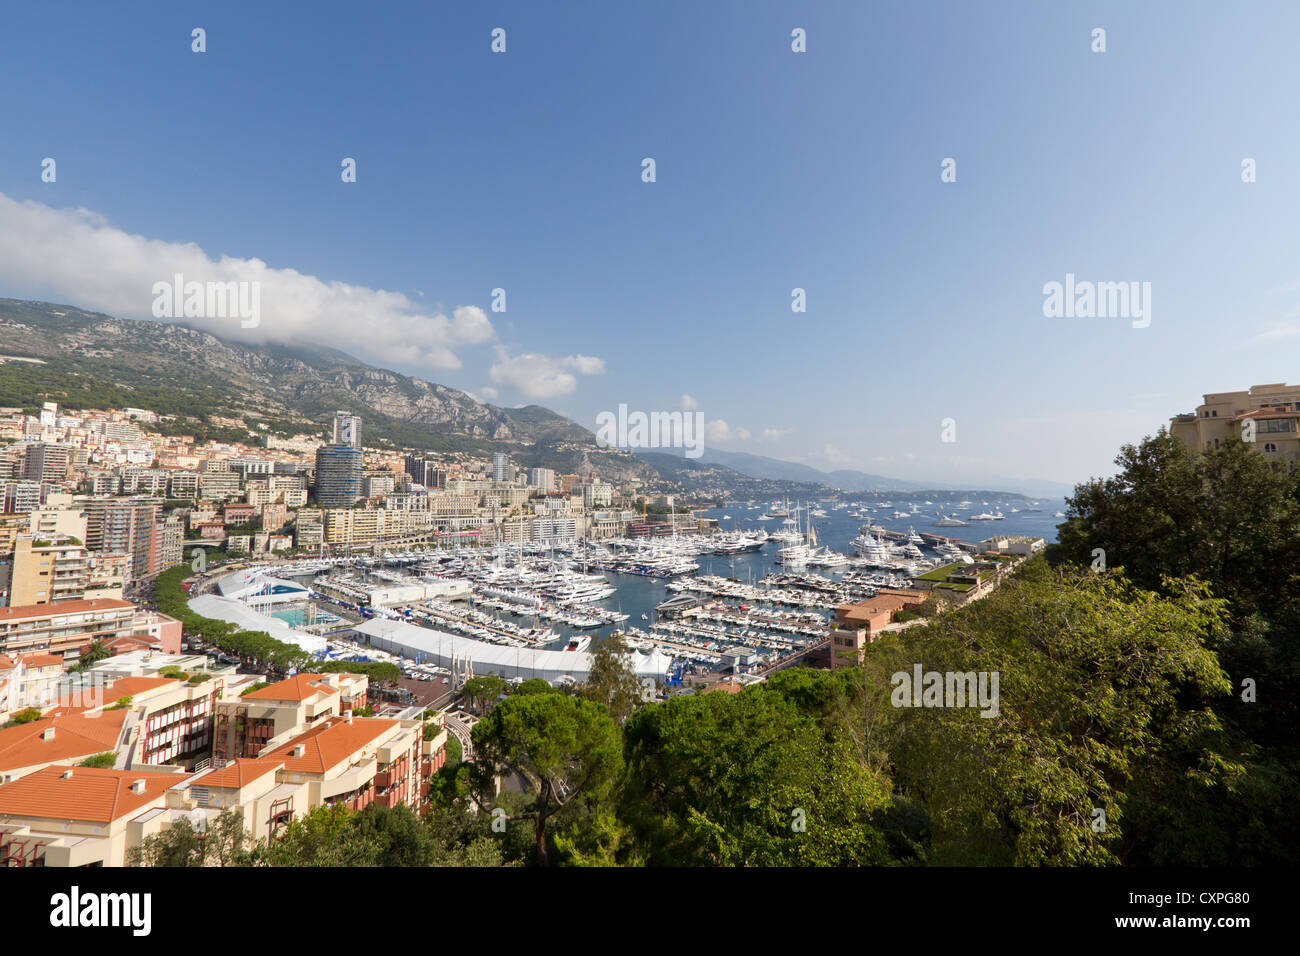 View at the Monte Carlo bay with yachts - Stock Image